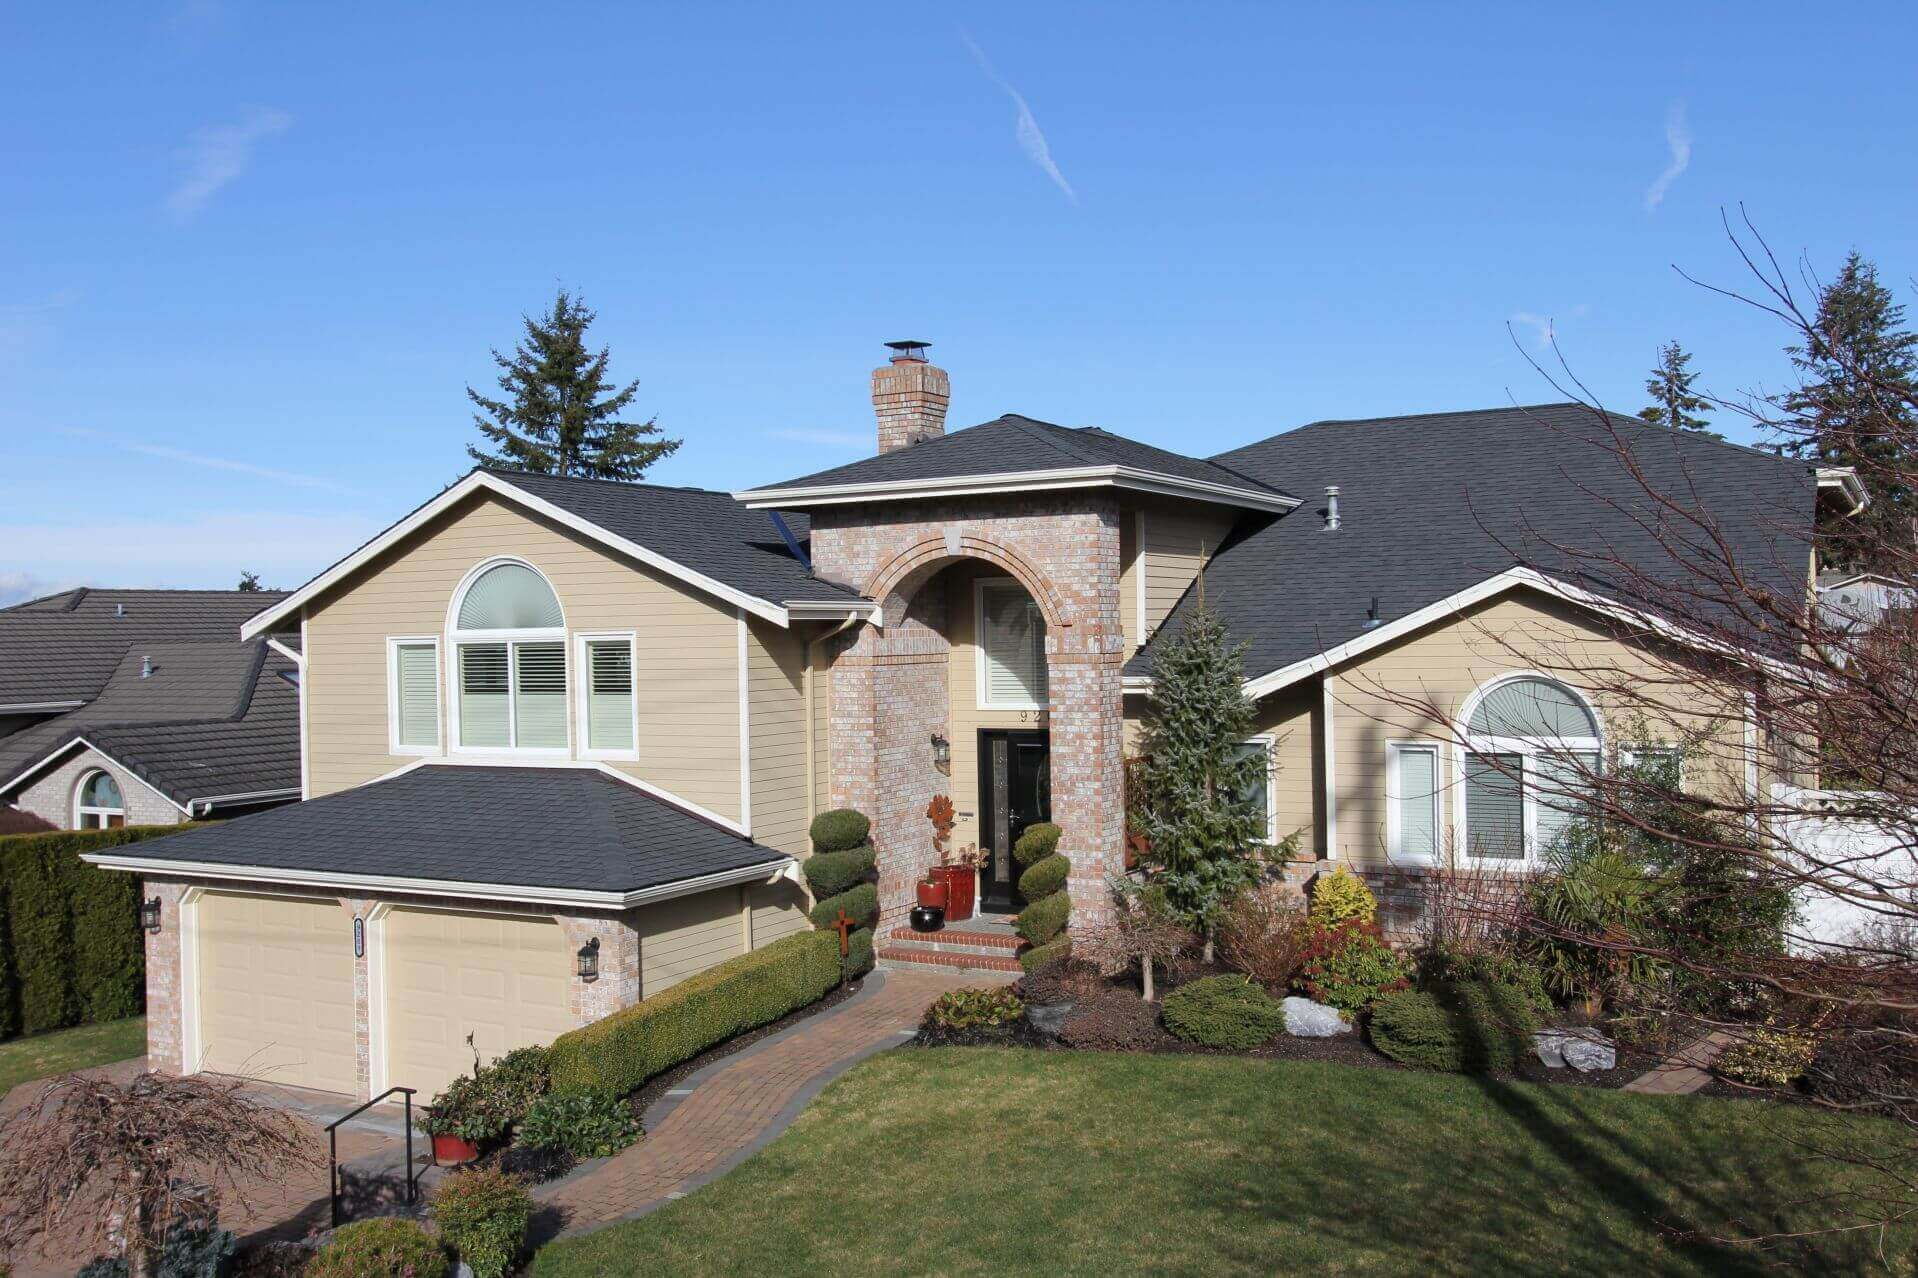 Roof Water Leak Repairs Edmonds. 45 Years Roofing Experience. Roofers & Roofing Company. Local Licensed Contractor Near Me - Emergency and New Roof Replacements. Roofing Experts For Lynnwood & Shoreline, Washington